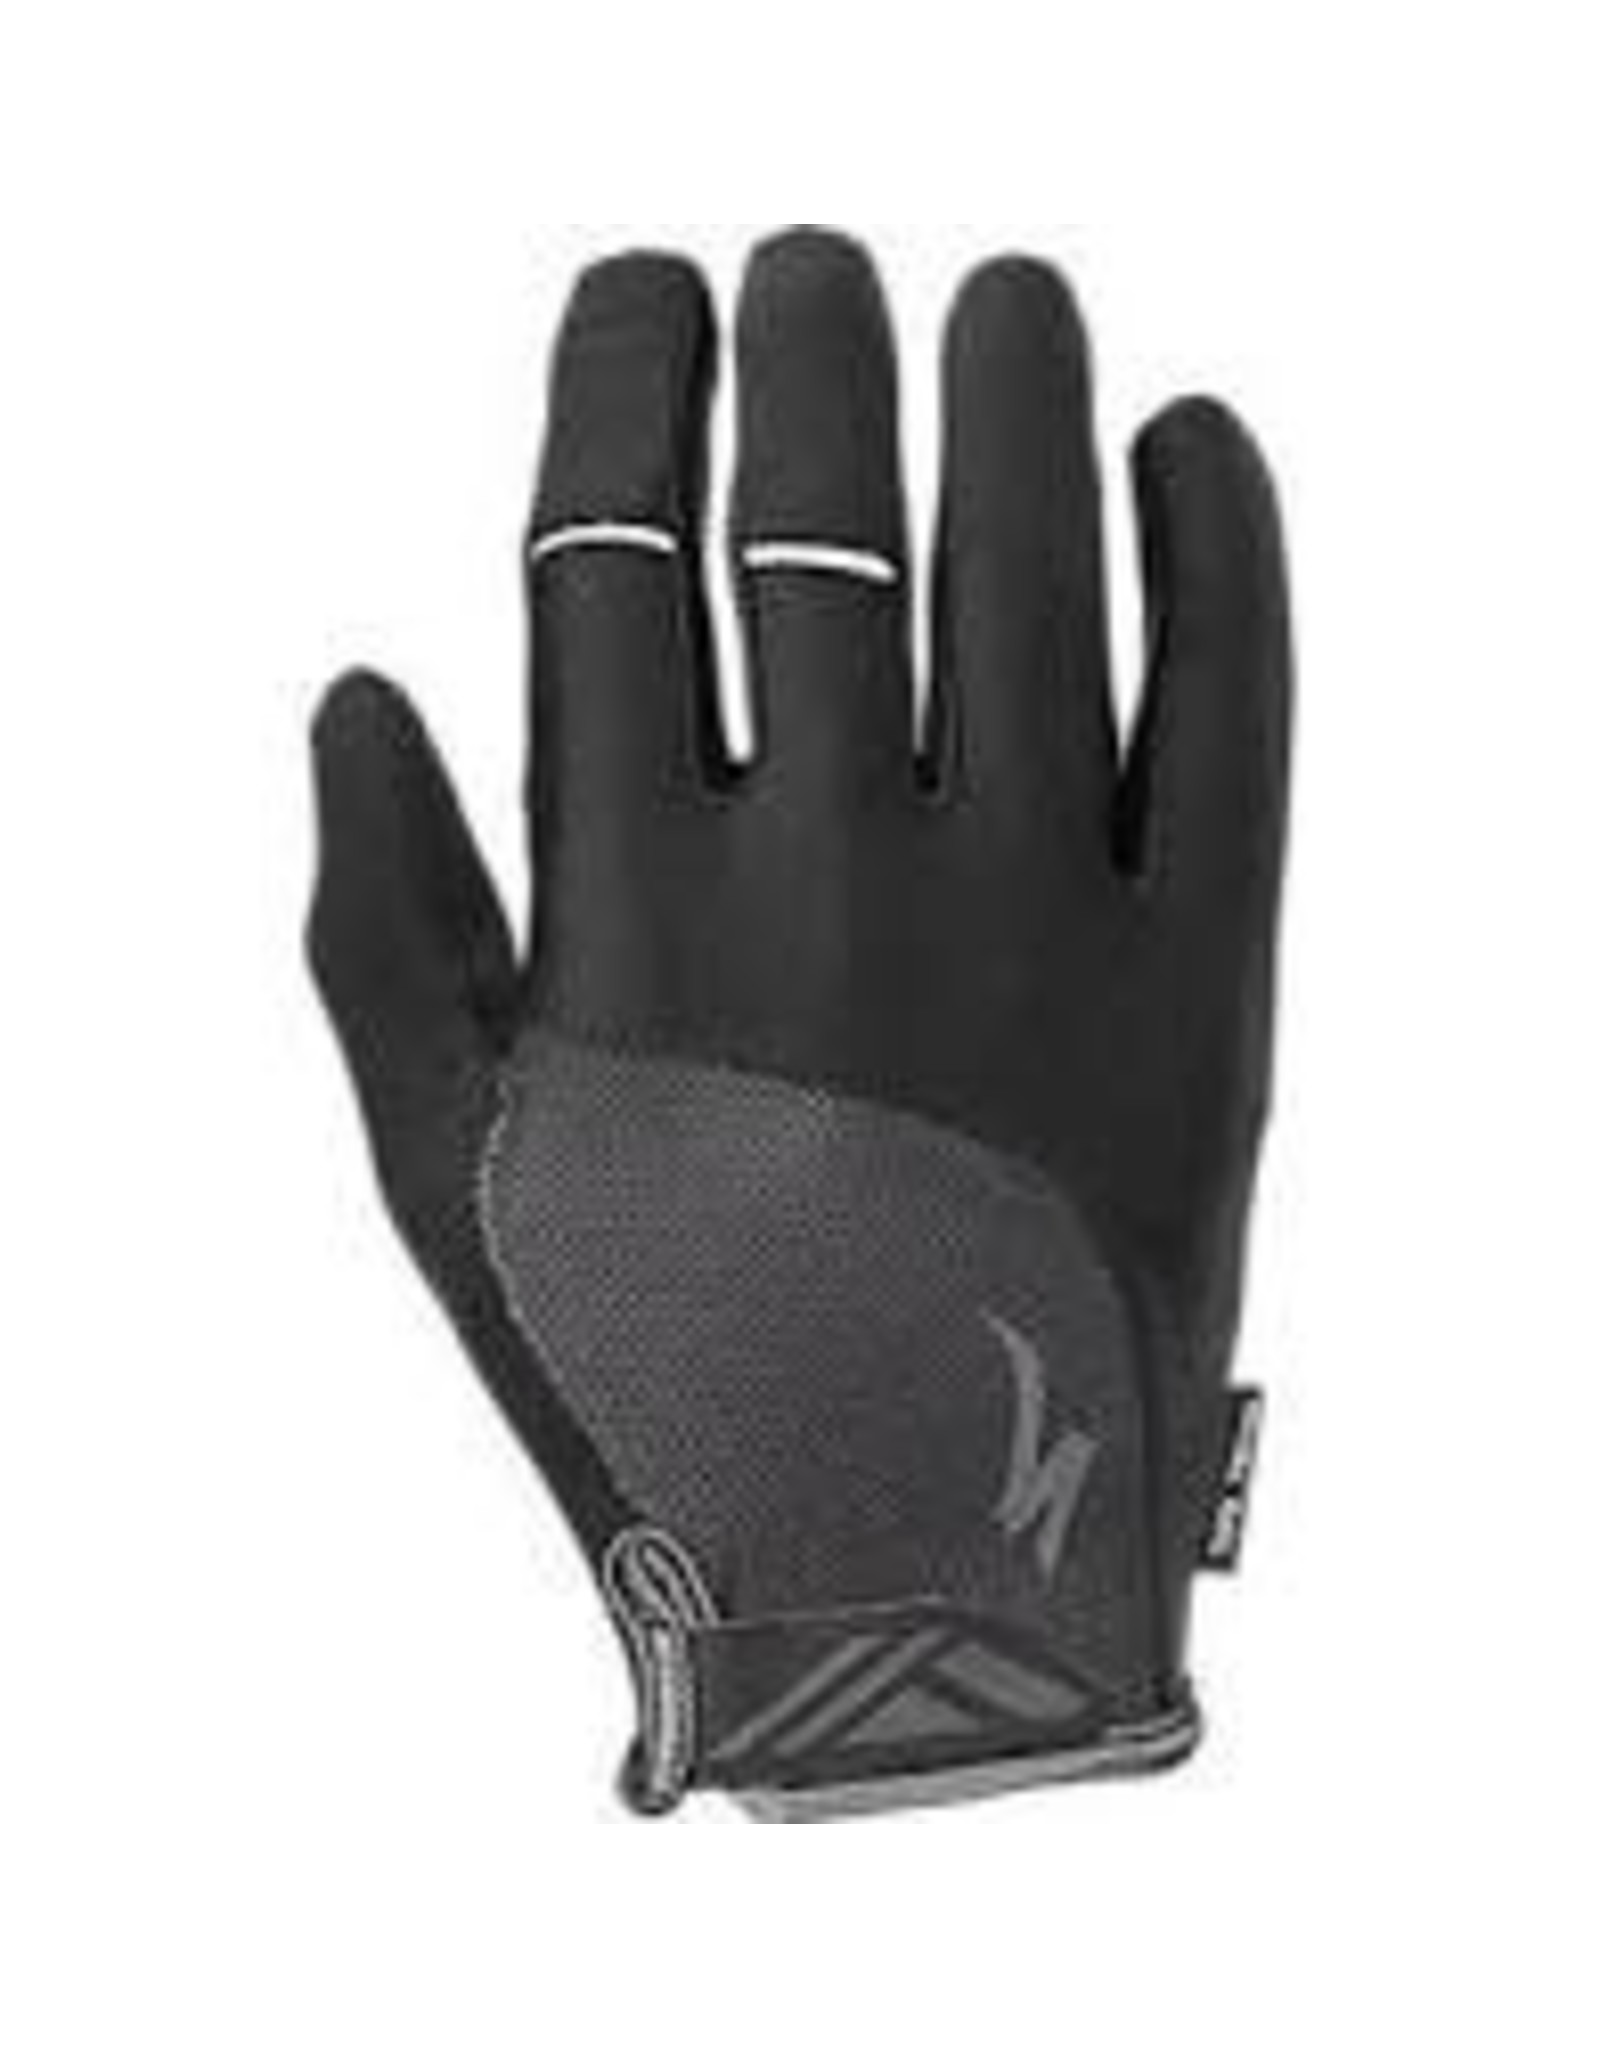 Specialized Glove Spec Gel Long Finger Black Medium